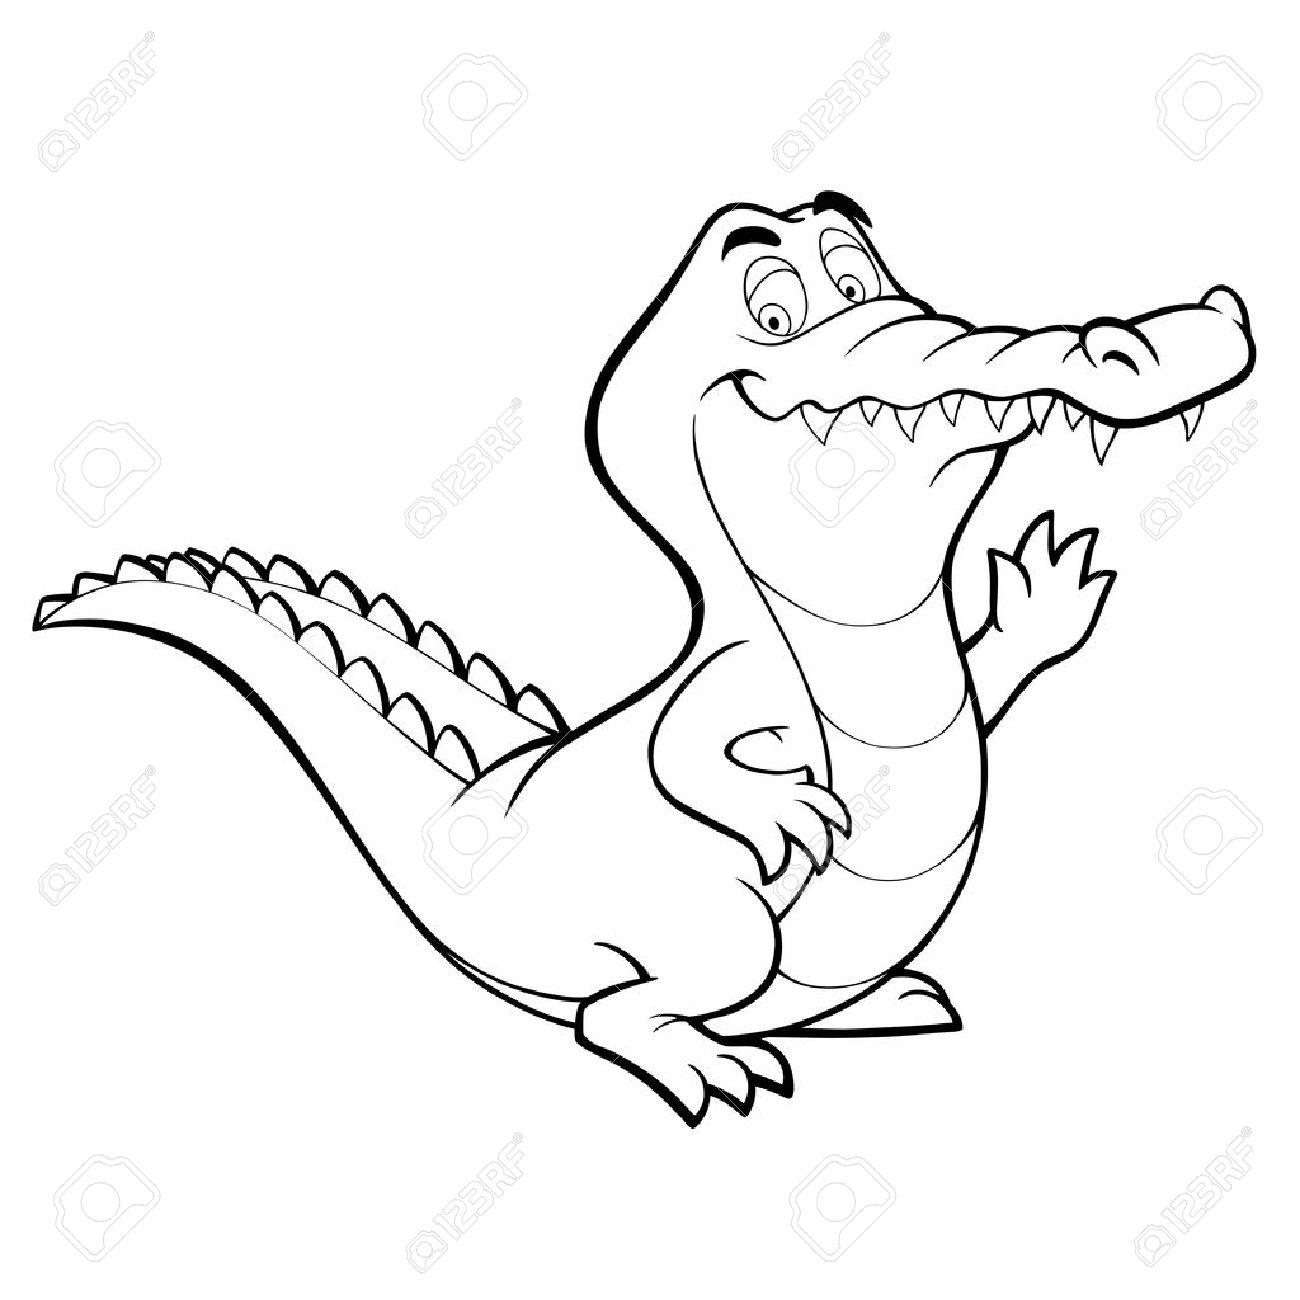 crocodile cartoon alligator line art coloring book black and royalty free cliparts vectors and stock illustration image 13842511 crocodile cartoon alligator line art coloring book black and